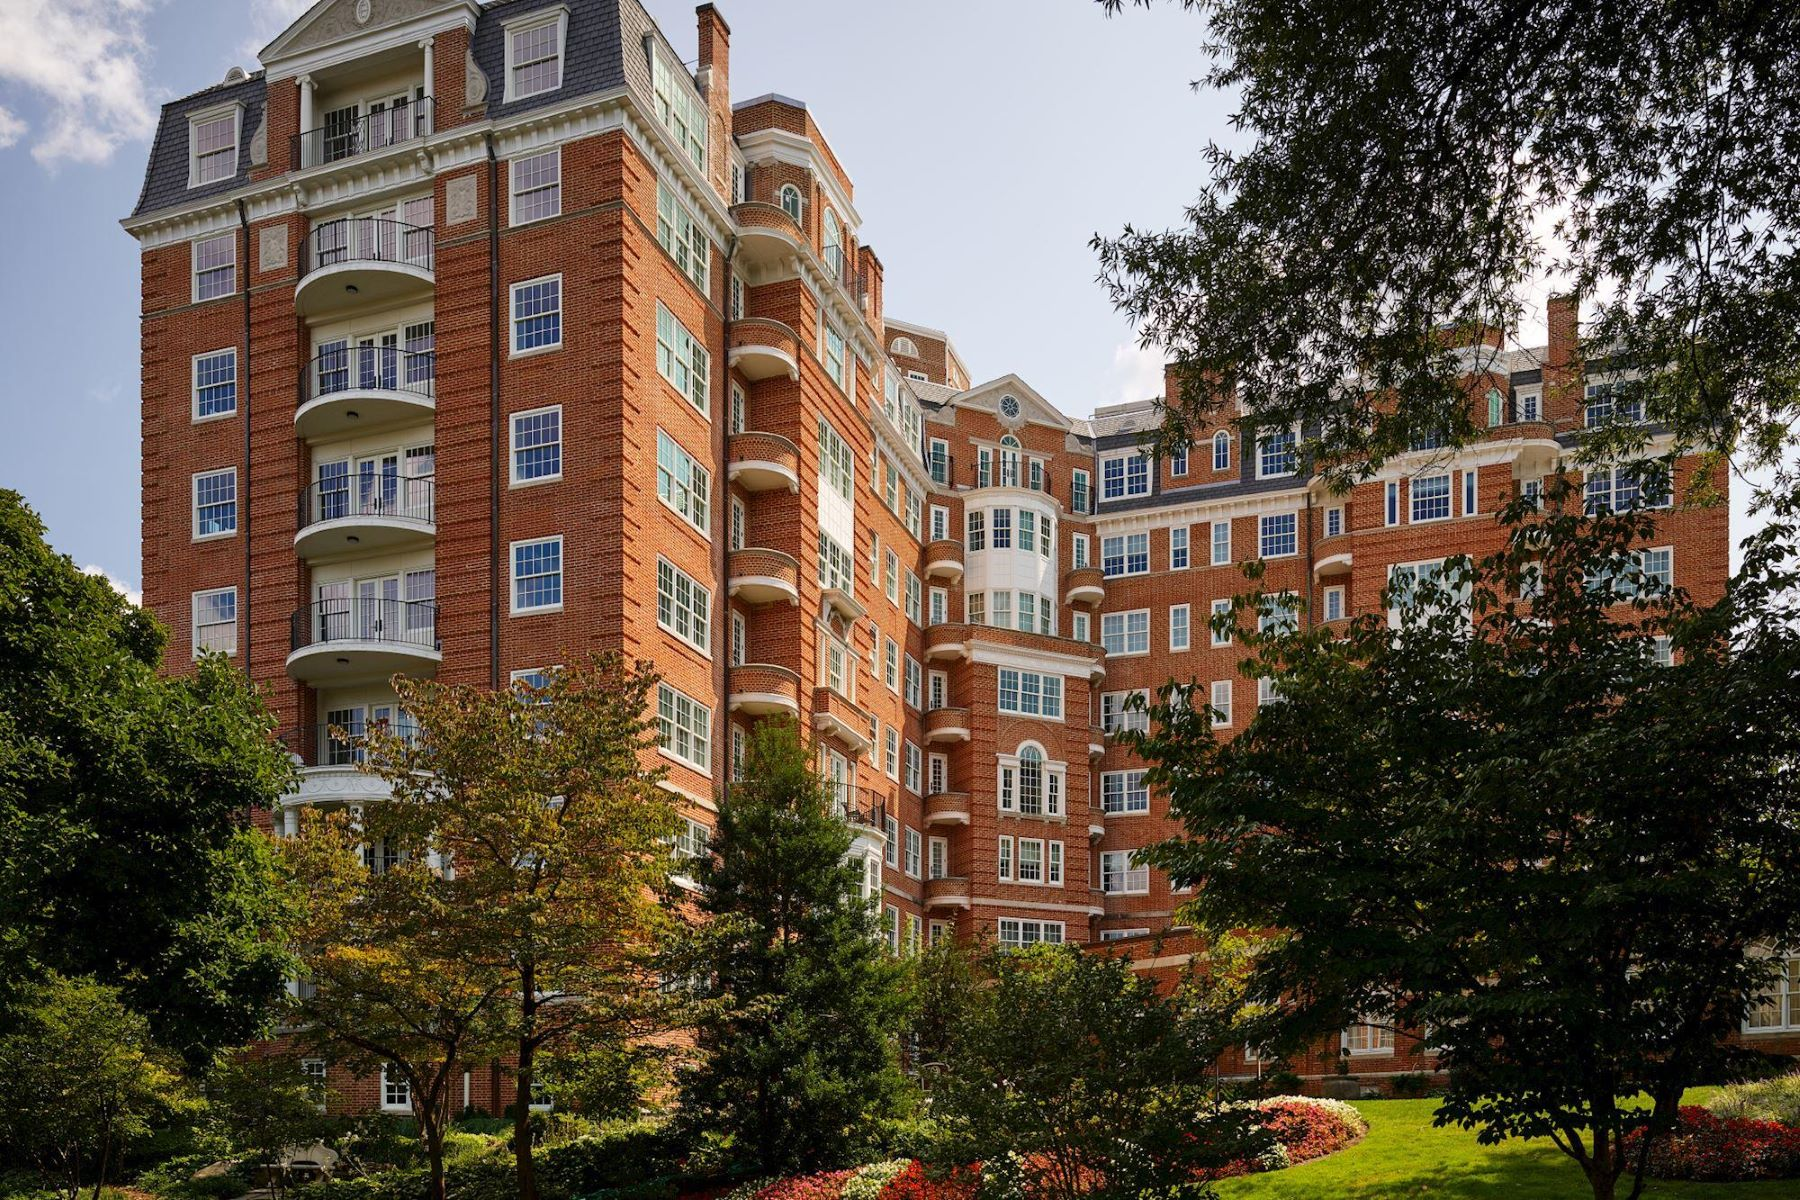 Property for Sale at 2660 Connecticut Ave NW #6f 2660 Connecticut Ave NW #6f Washington, District Of Columbia 20008 United States